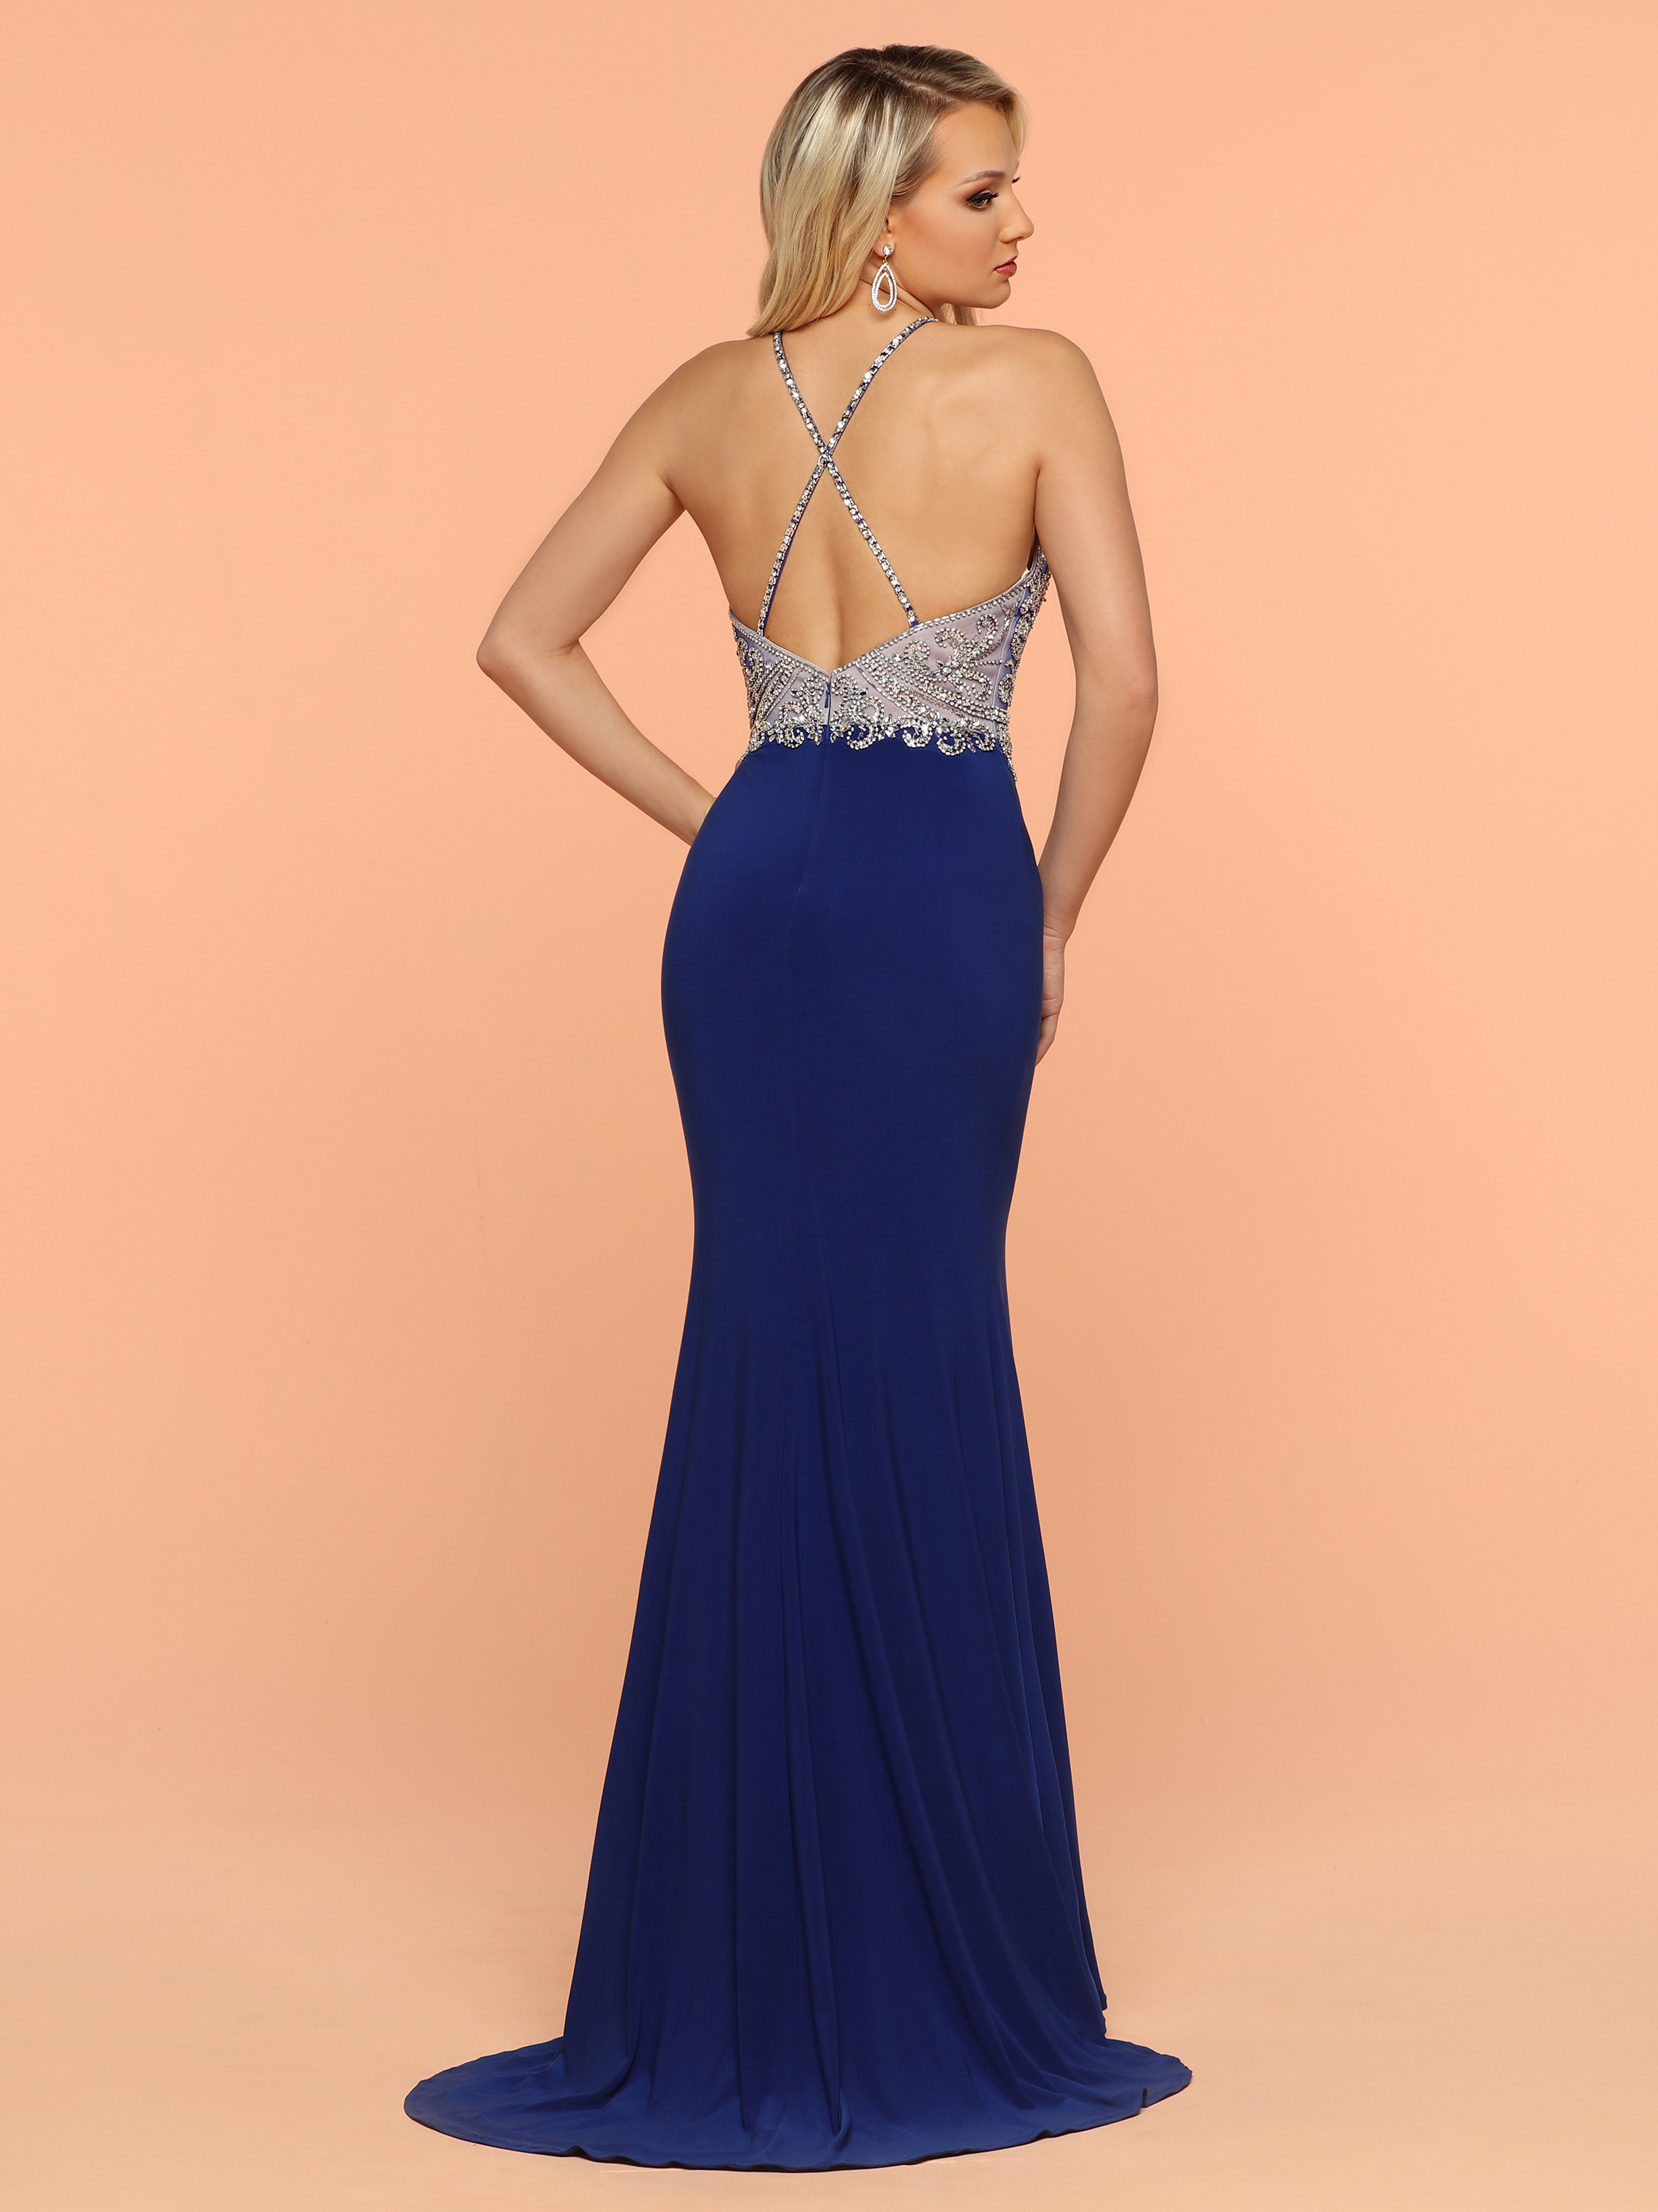 Image showing back view of style #71831